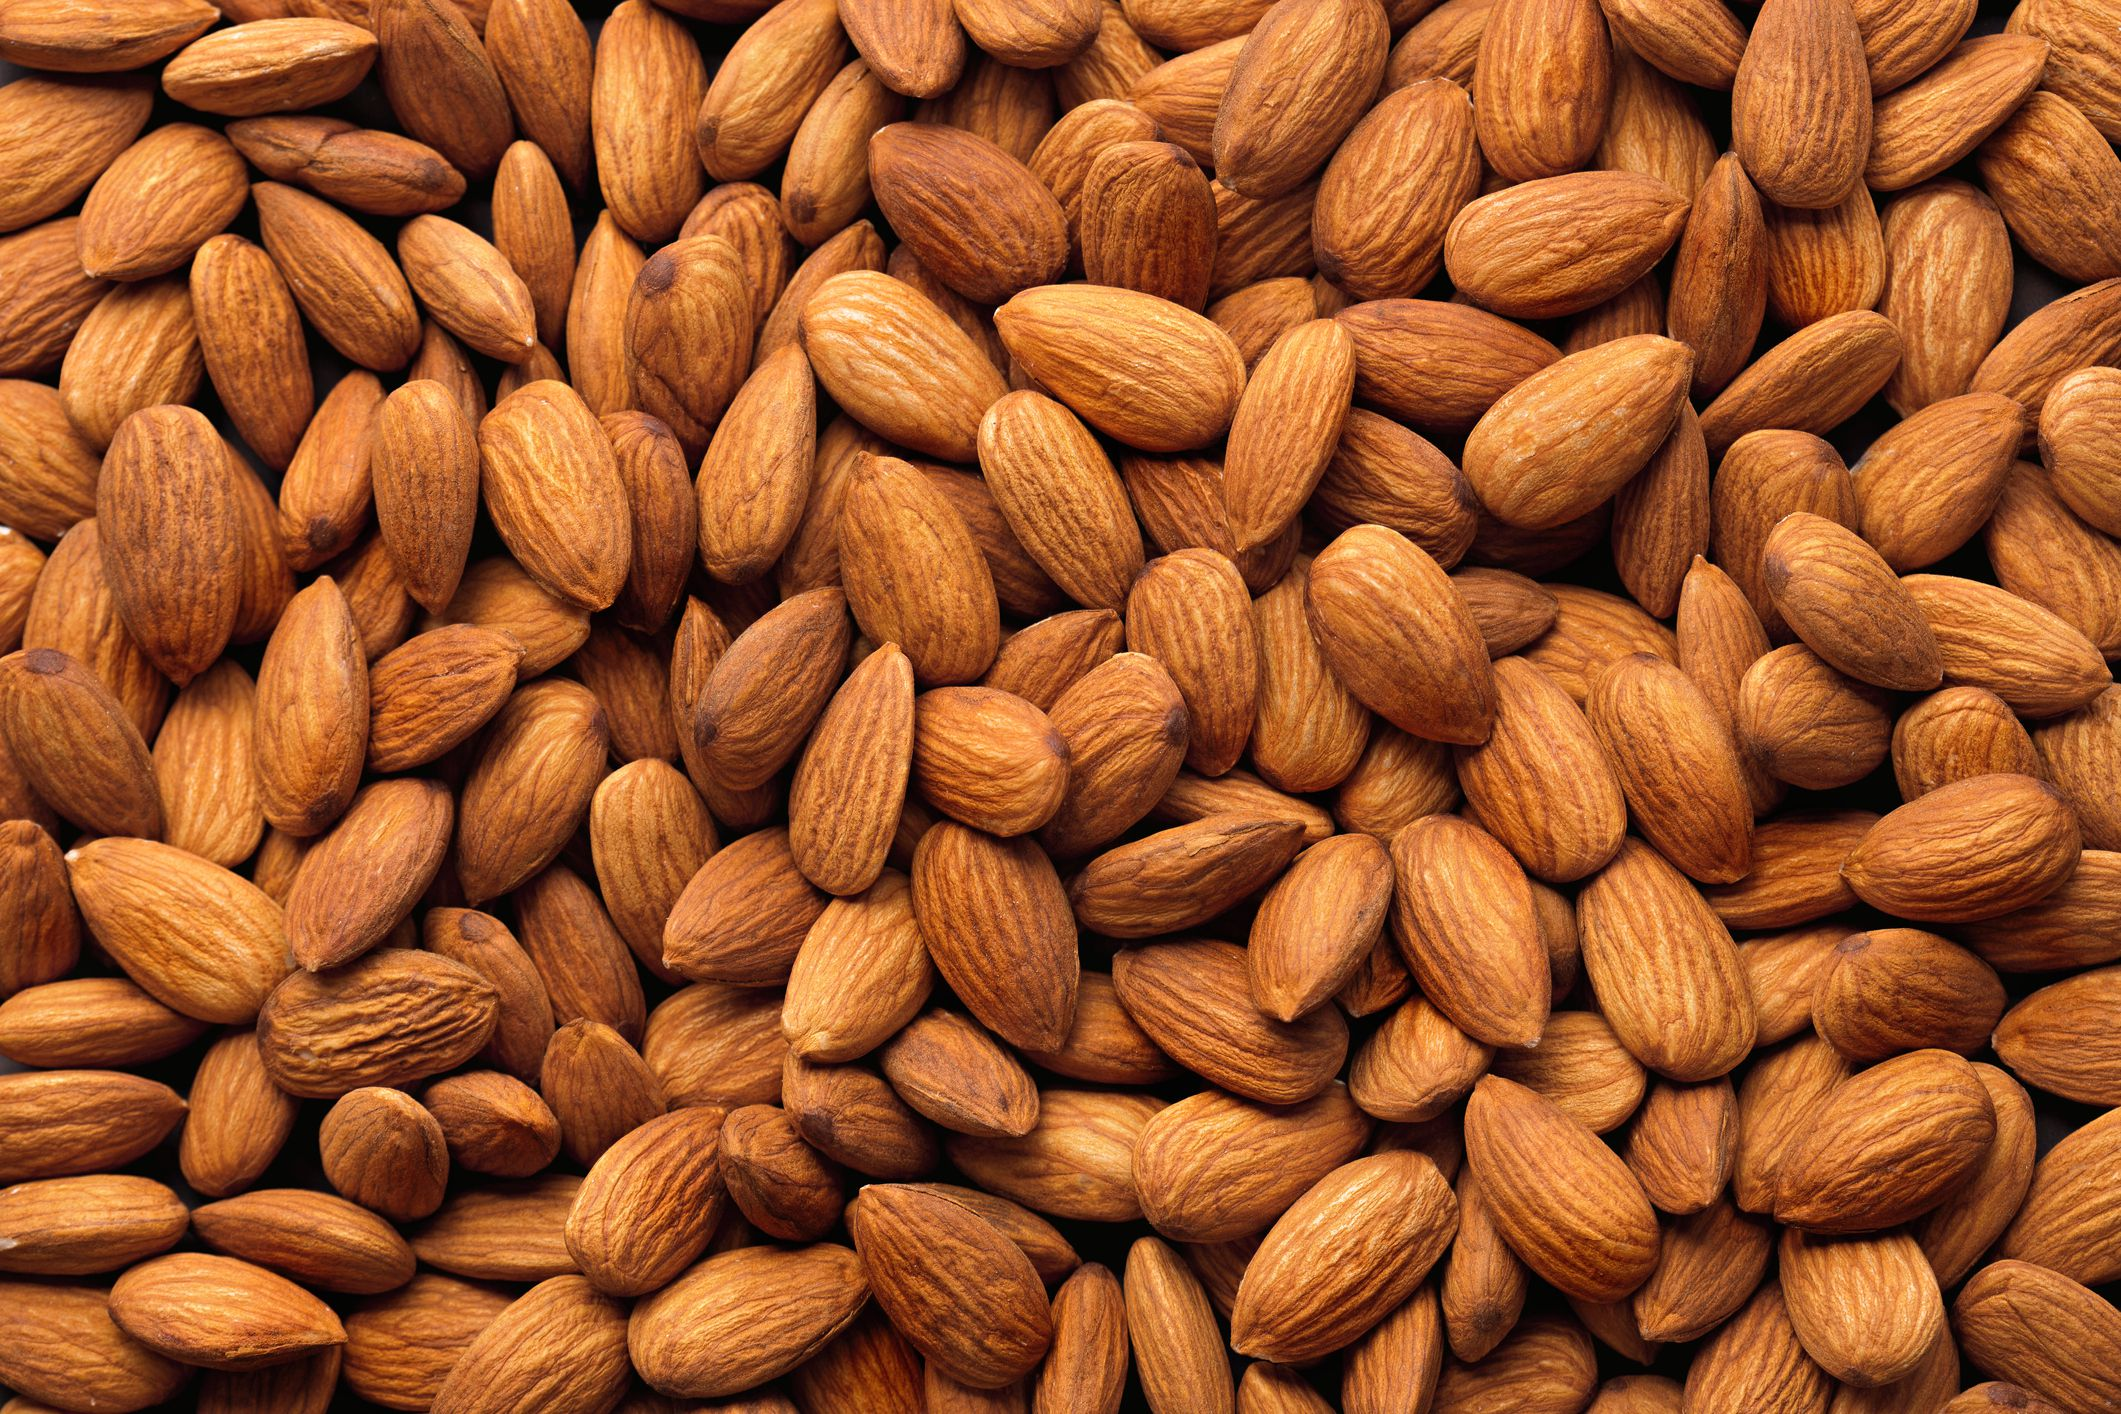 Nutrition: 10 Healthy Foods With Magnesium You Should Add to Your Diet